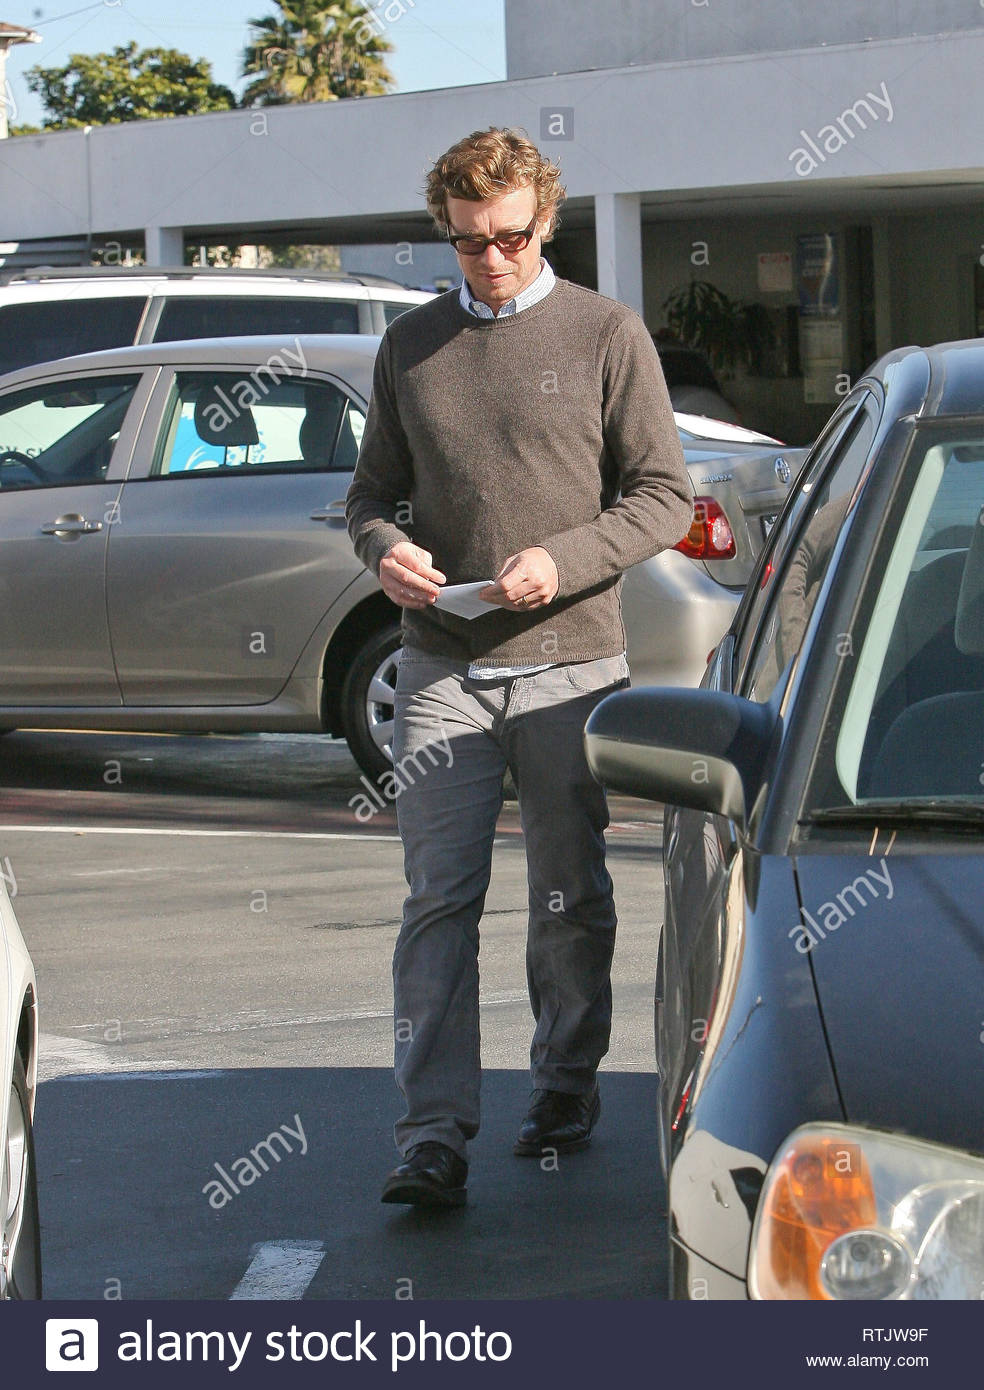 Toyota Santa Monica Service >> Simon Baker Leaves His Toyota Prius For Service At The Dealer In